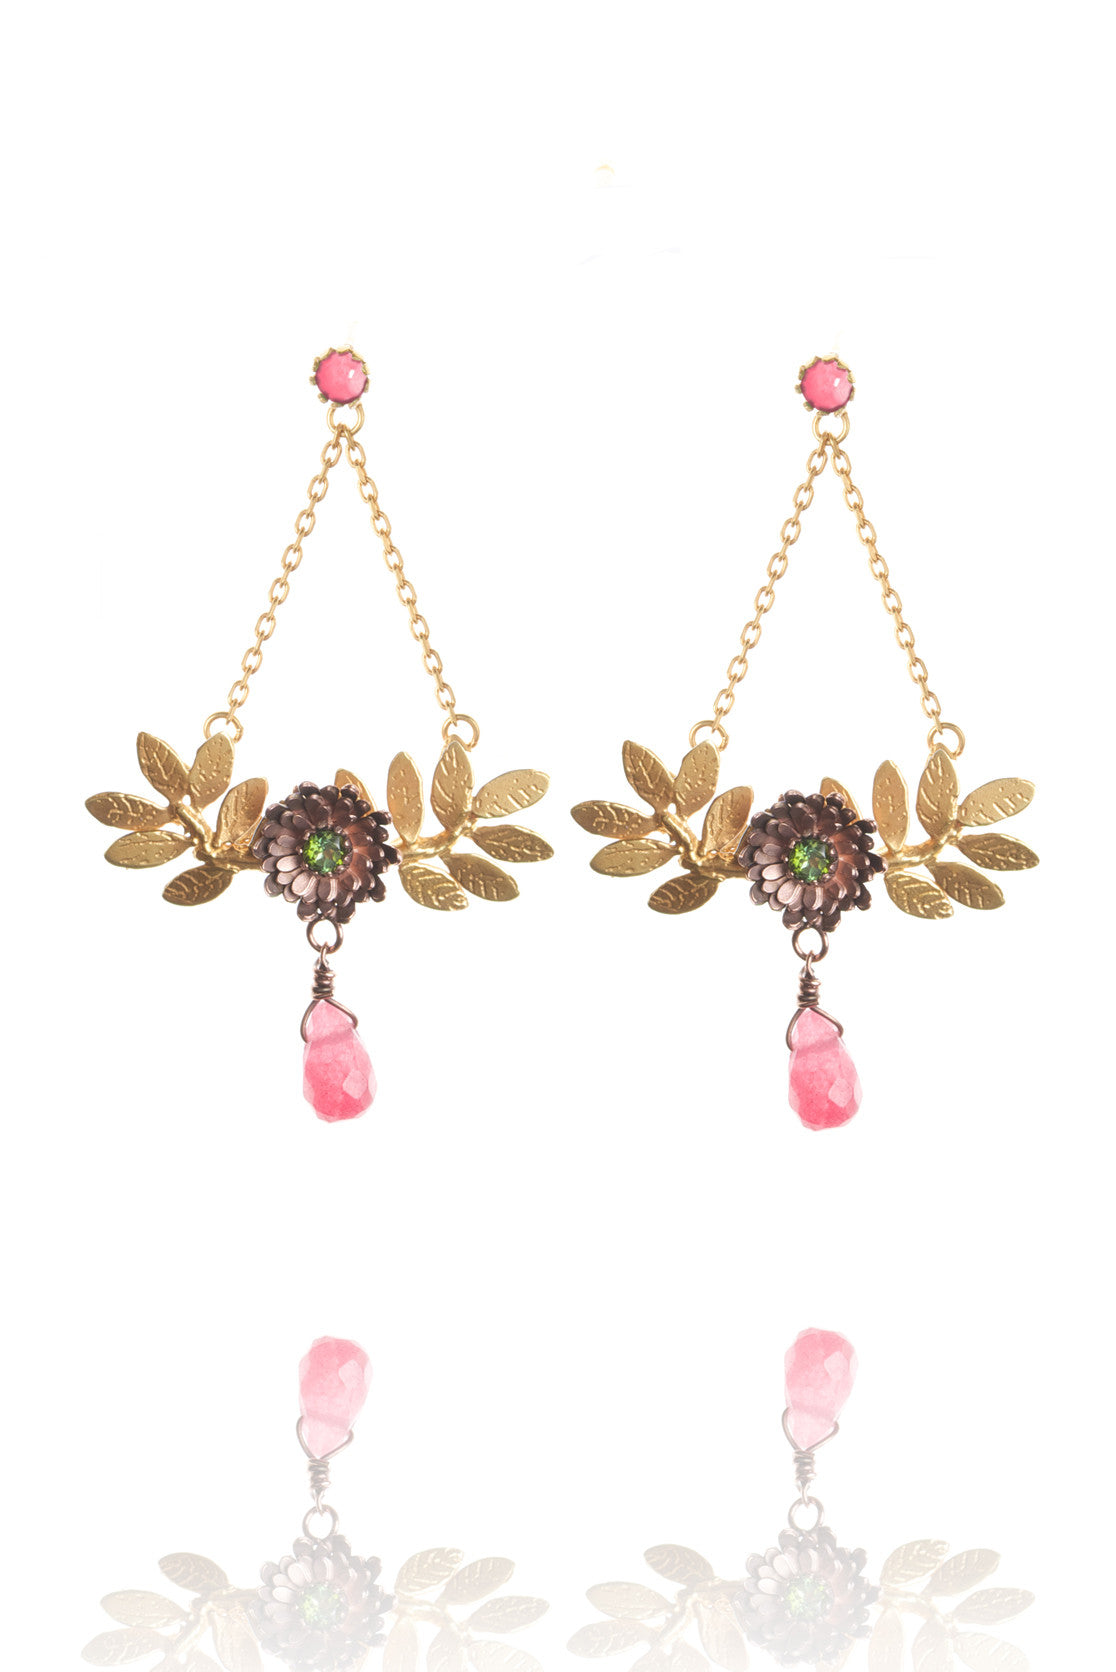 22ct gold vermeil leaves with rose gold flowers - green tourmaline with purple drop